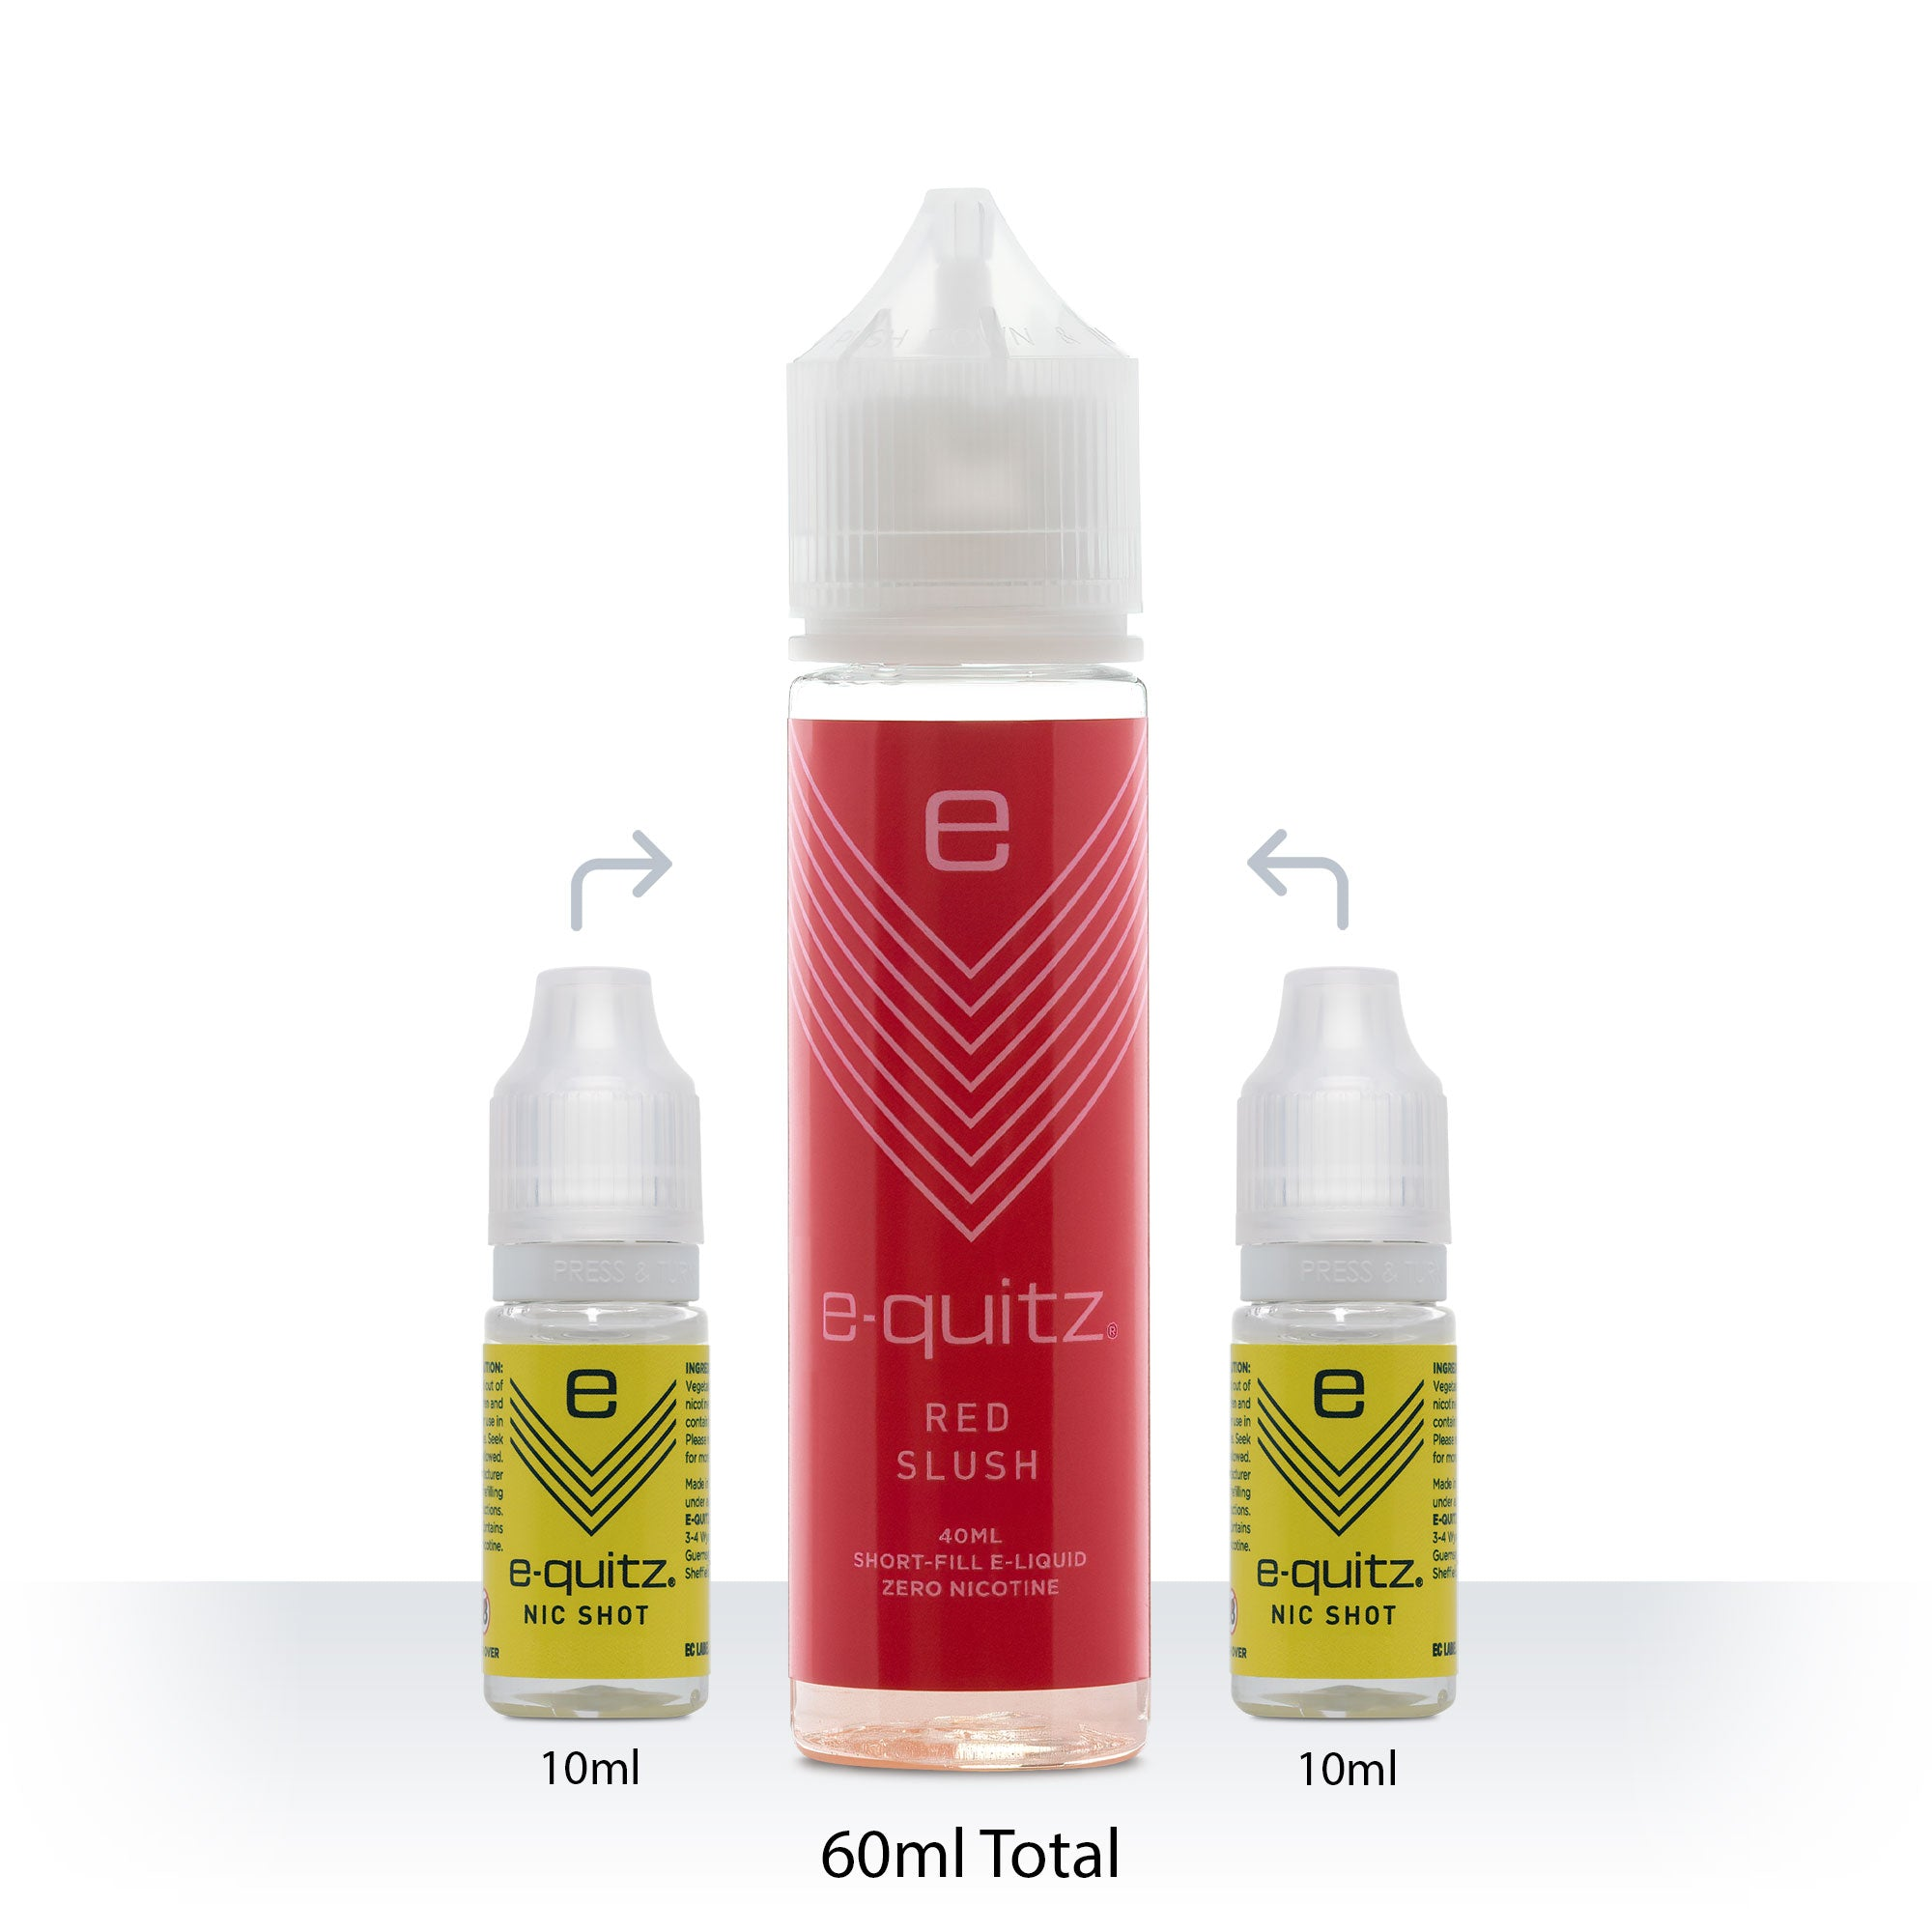 e-quitz red slush Short Fill e-liquid